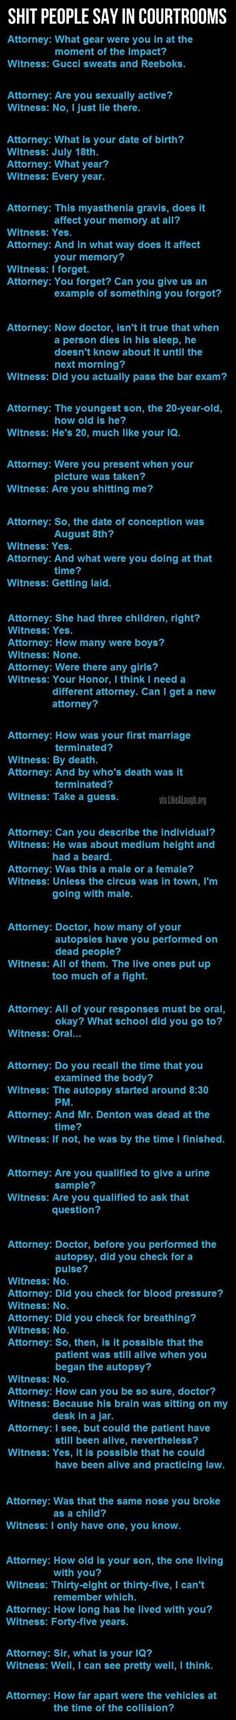 Things people say in courtrooms